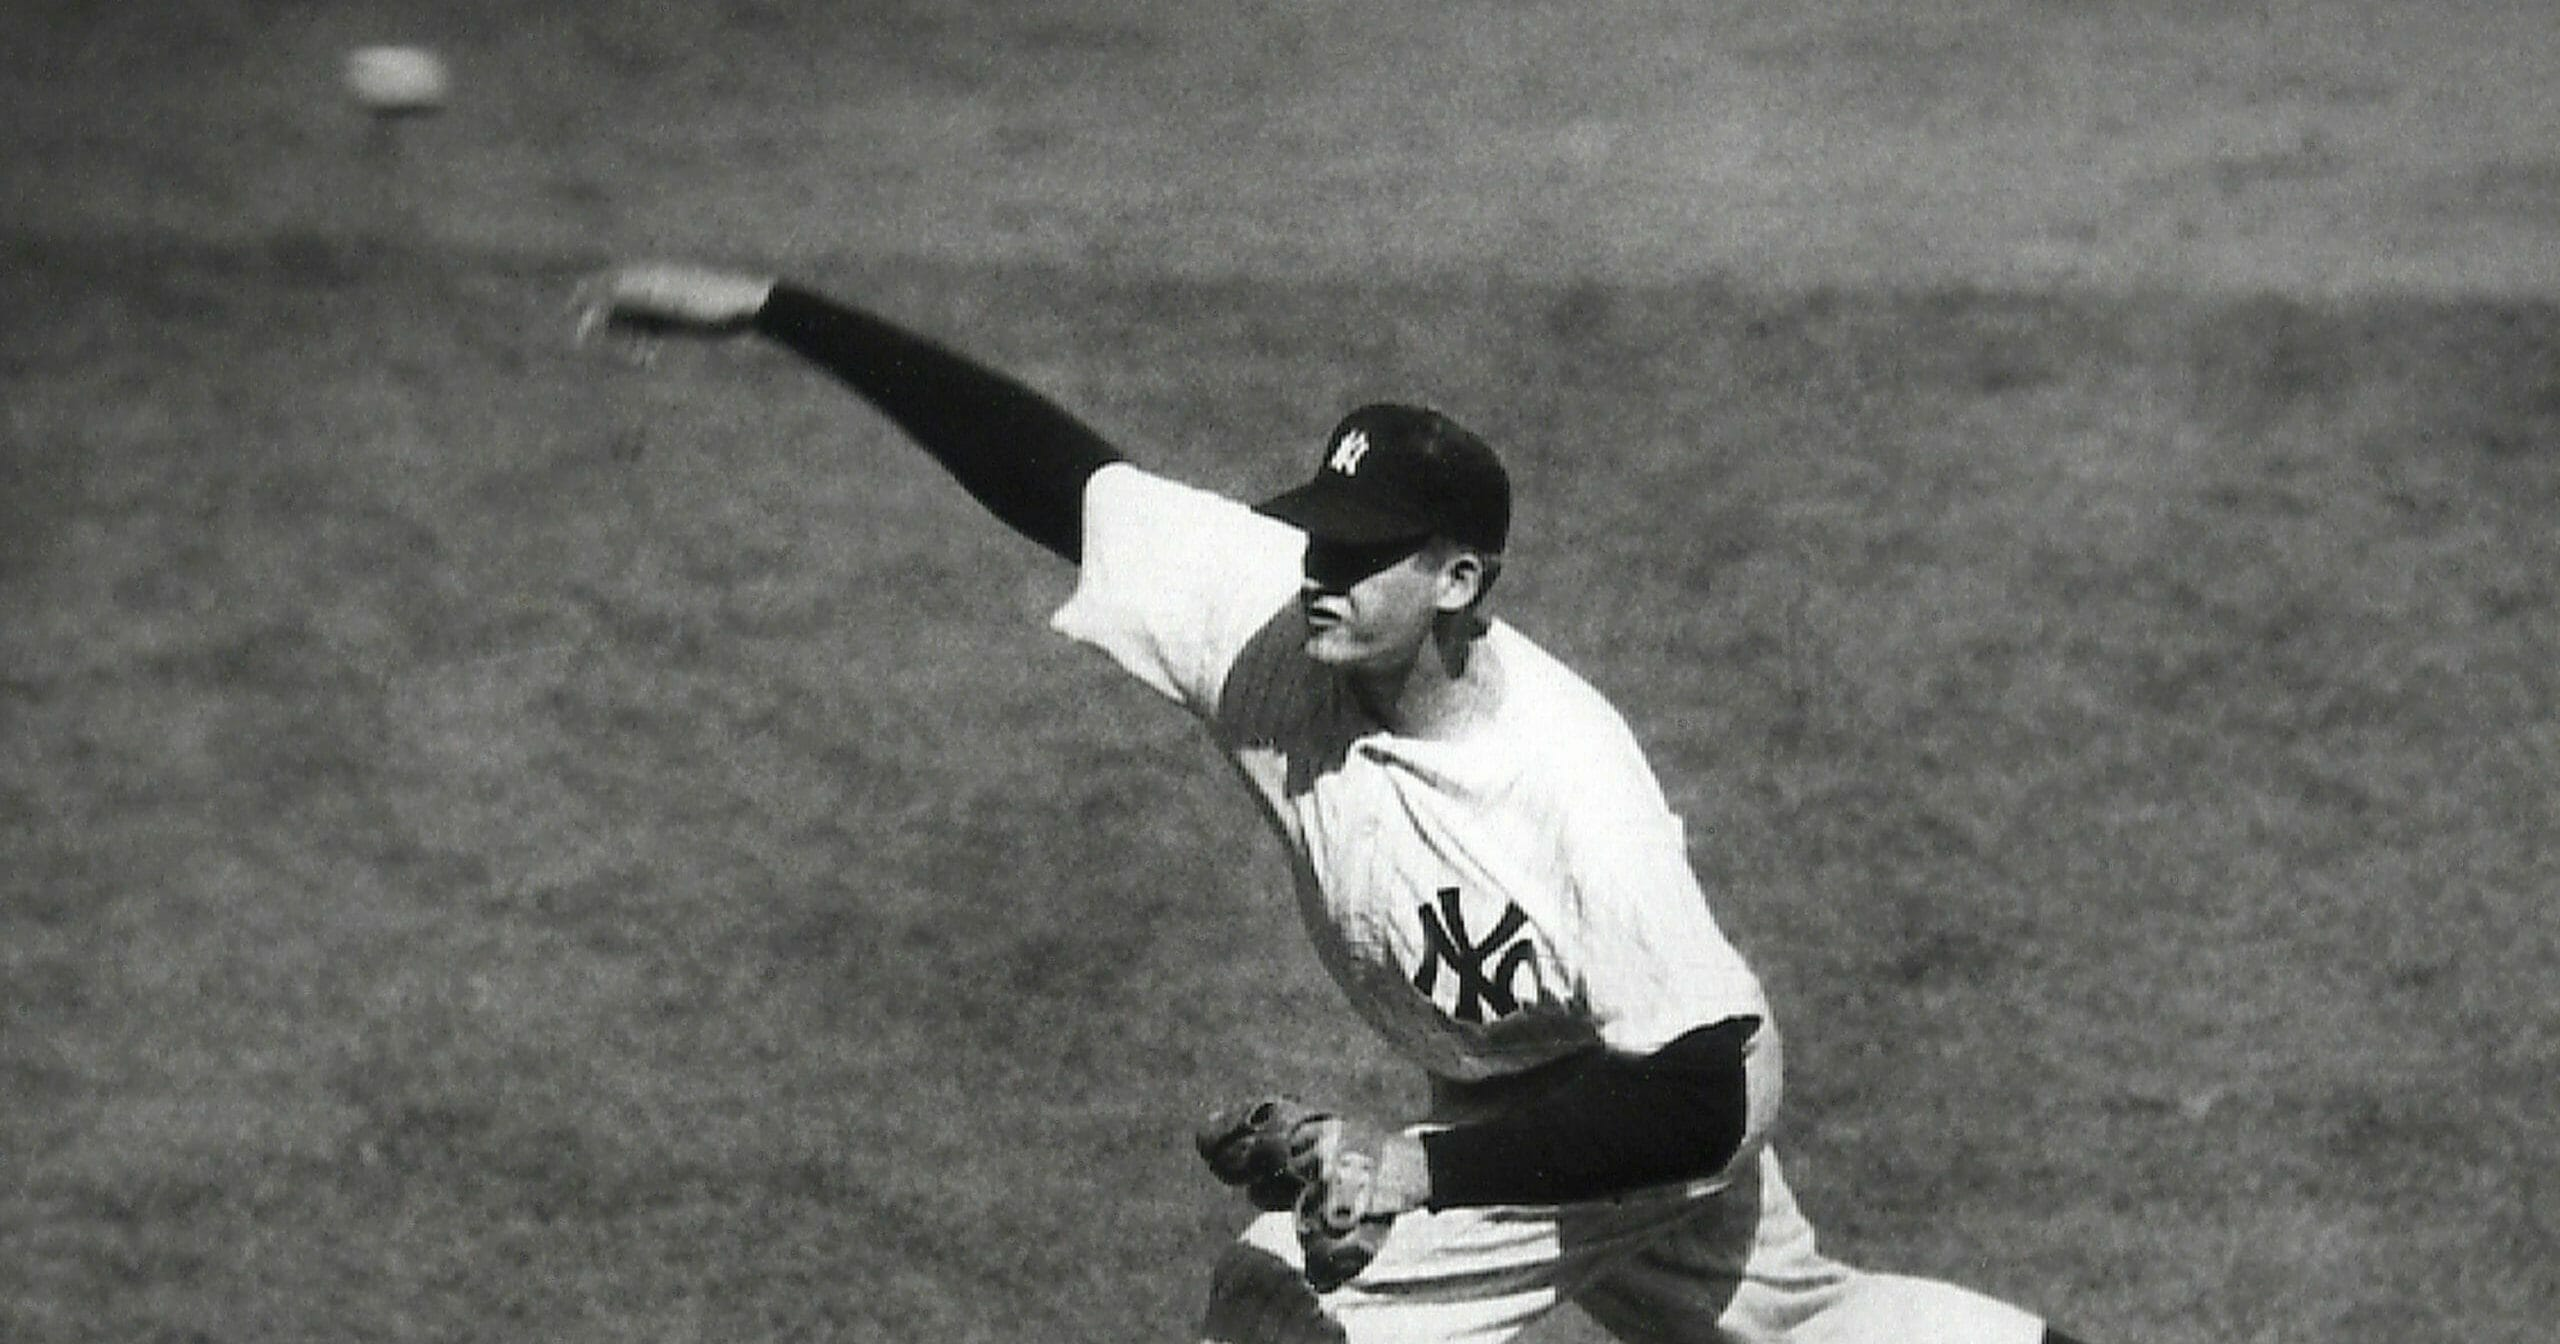 The New York Yankees' Don Larsen delivers a pitch in the fourth inning of Game 5 of the World Series against the Brooklyn Dodgers